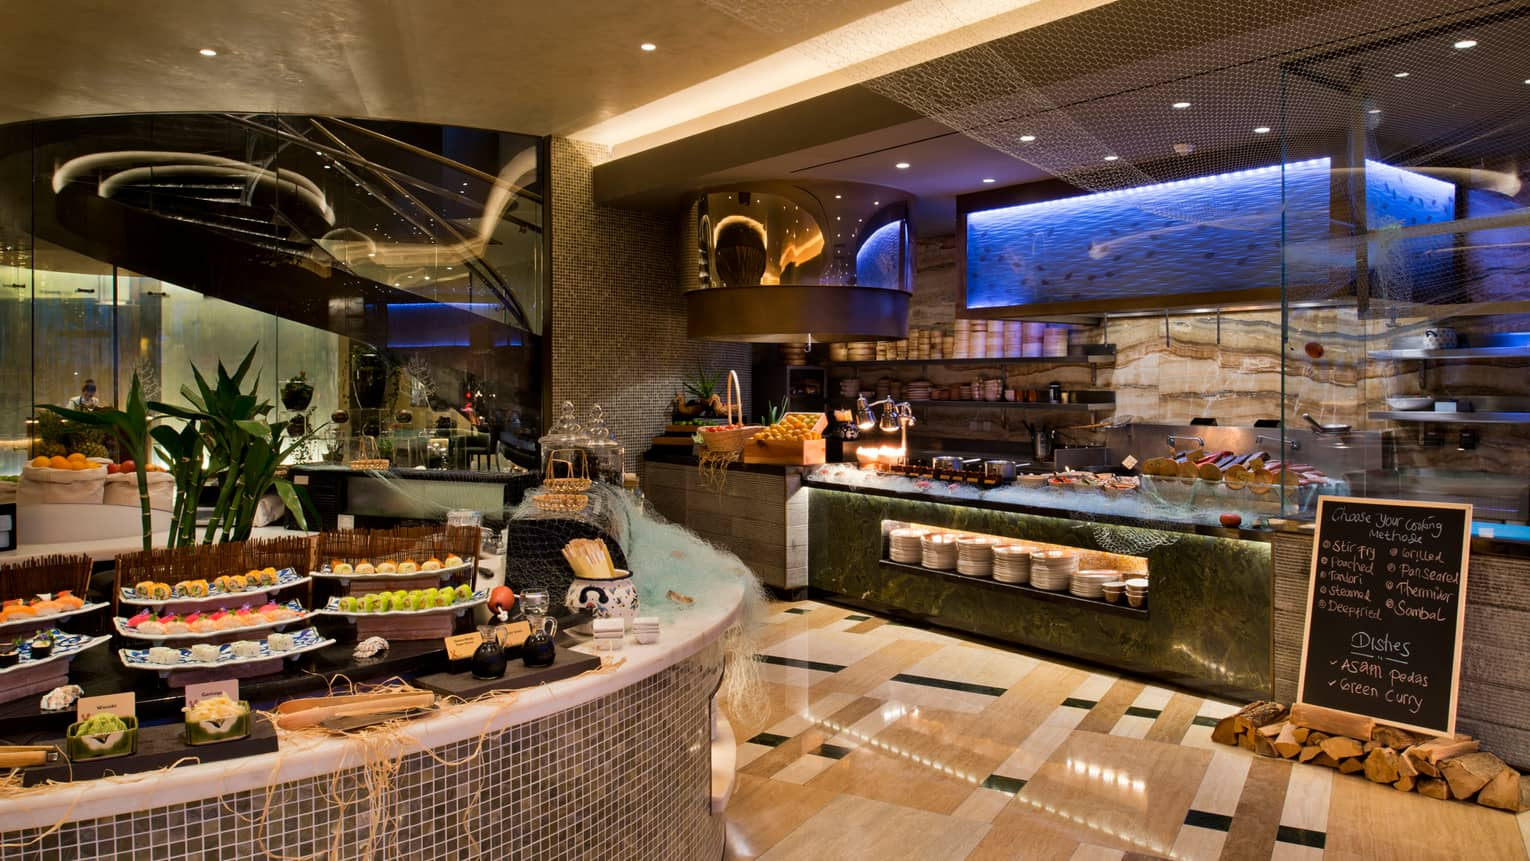 Bahrain Bay Kitchen buffet stations with sushi and seafood bar, sushi rolls on white platters